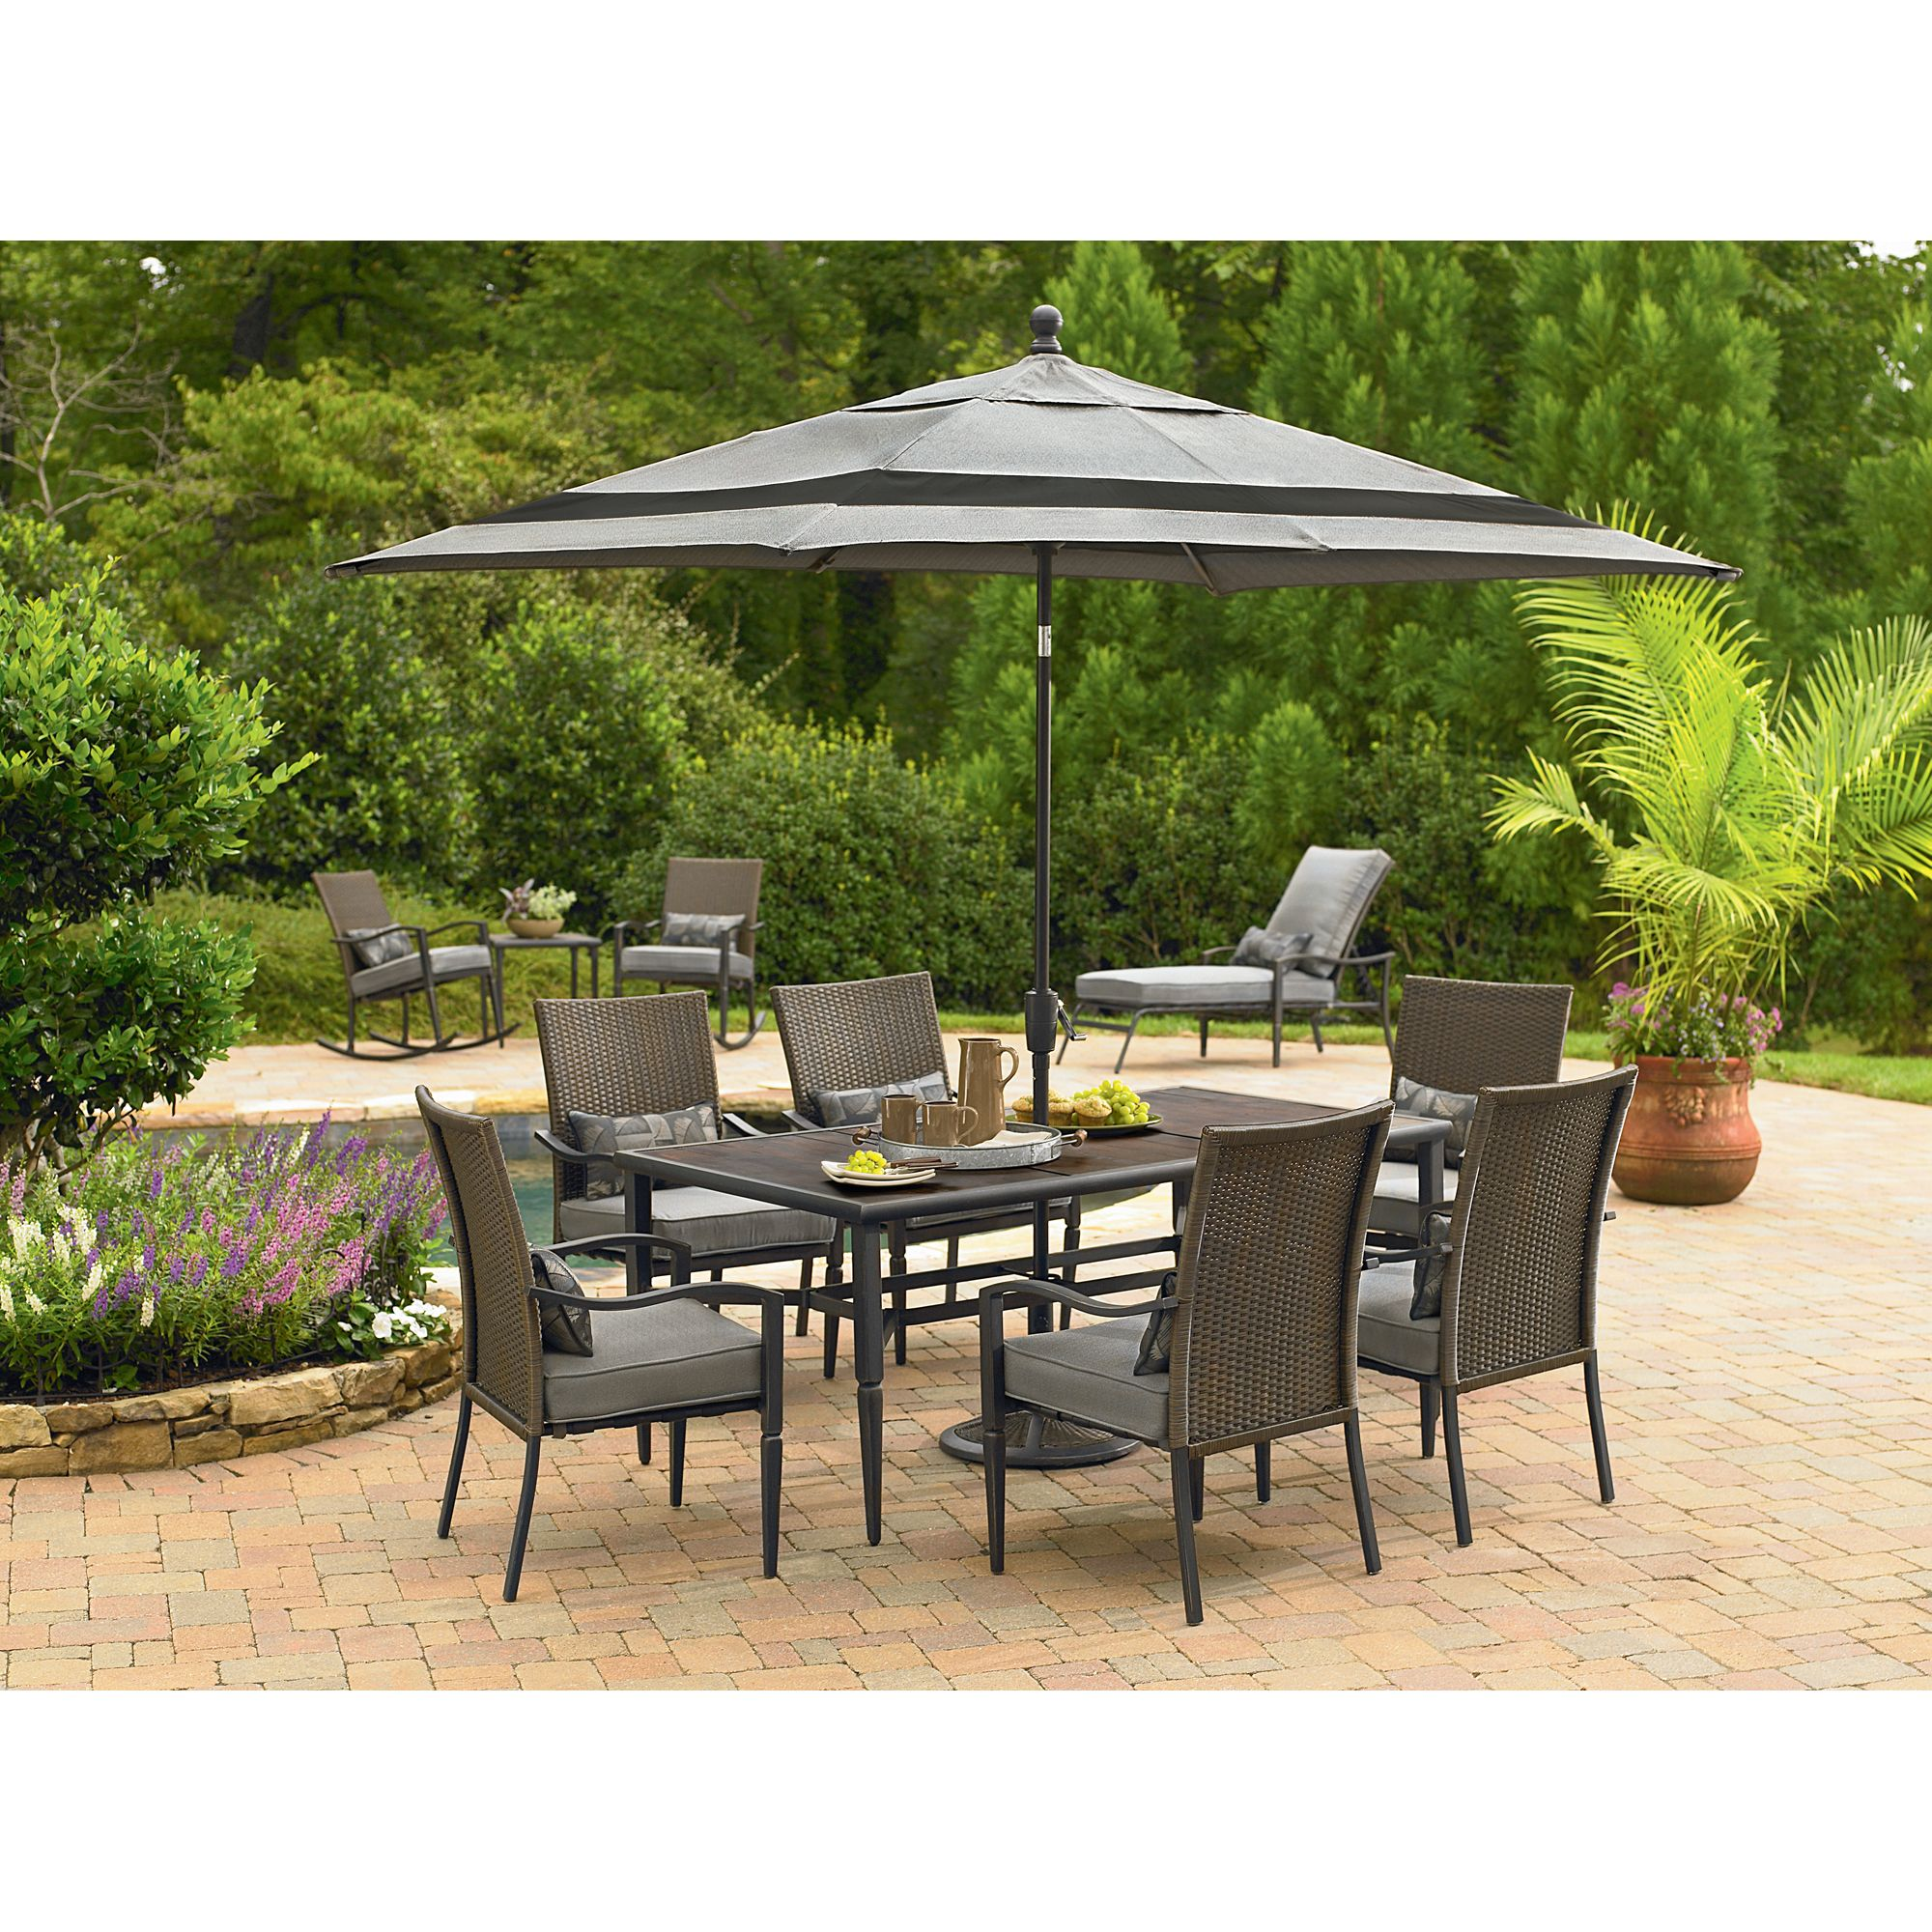 garden oasis patio chairs revolving chair without arms price set design ideas